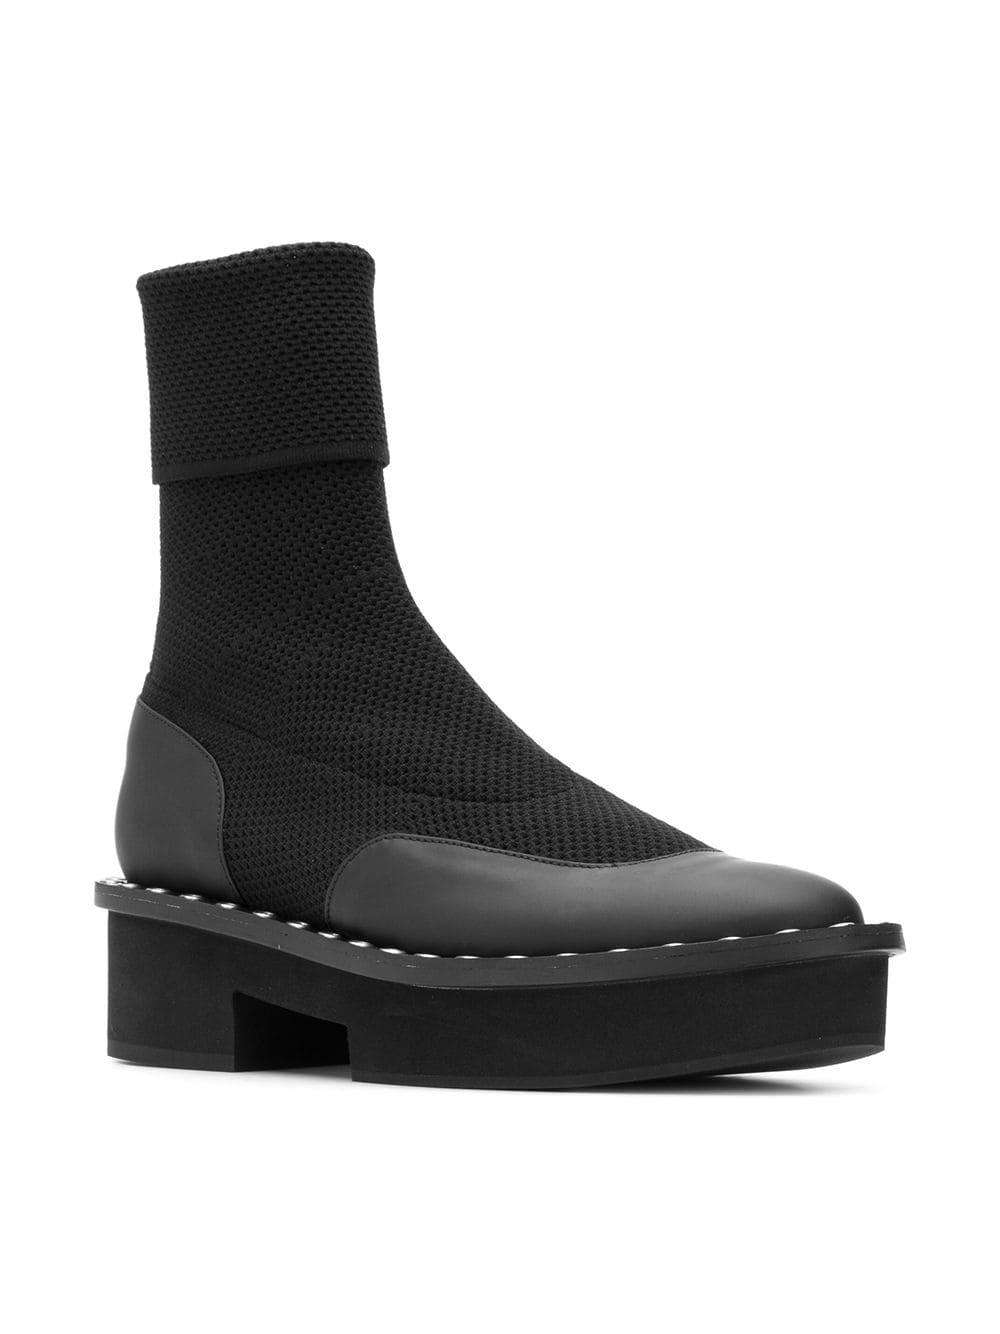 36bf899c7de Clergerie Blind Boots in Black - Lyst